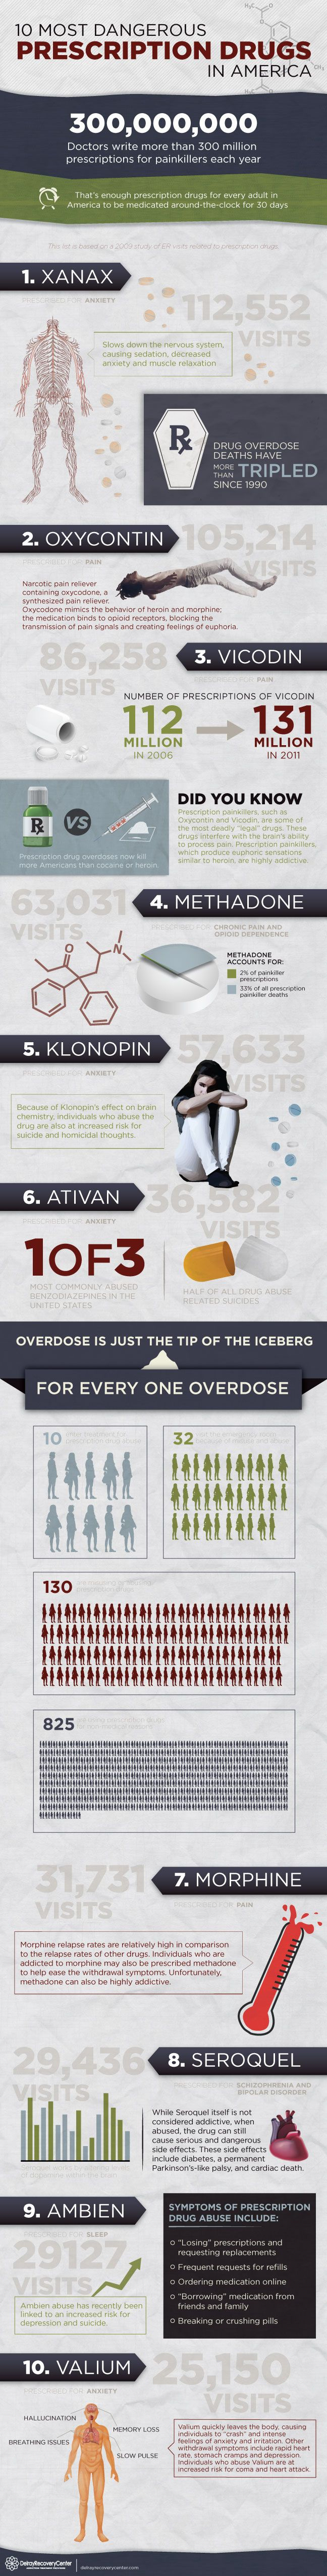 The top 10 most dangerous prescription #drugs in America.